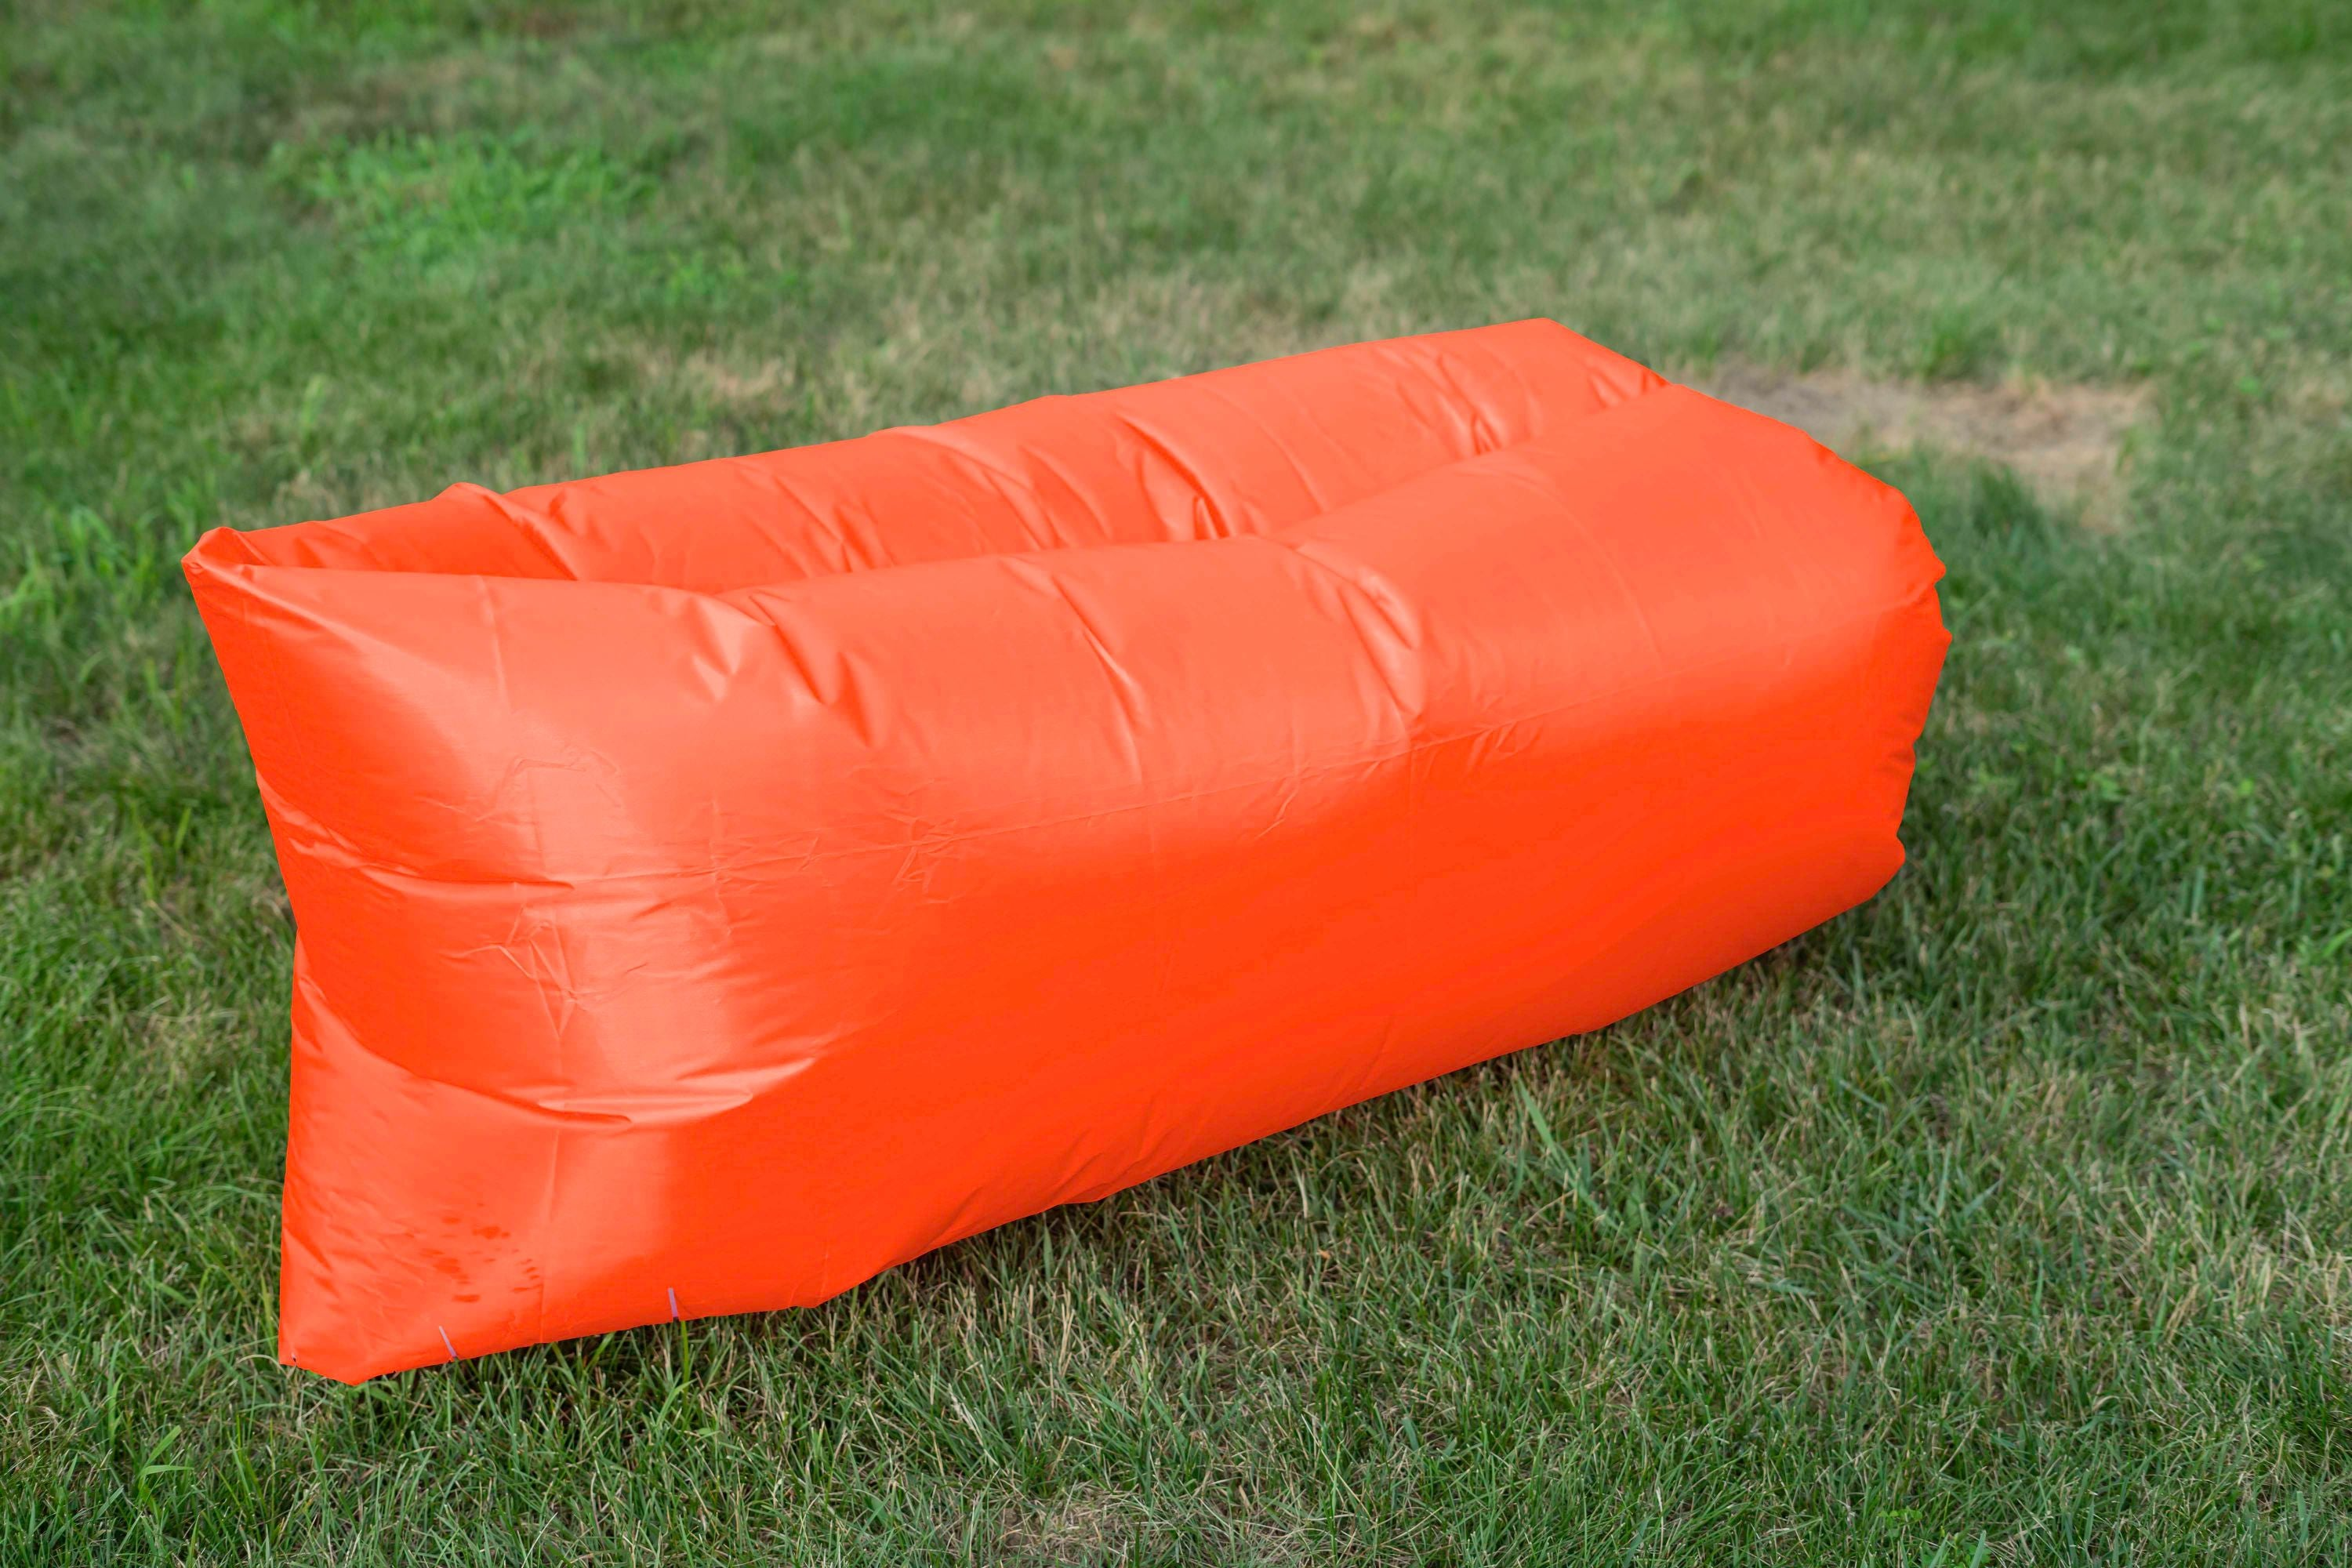 shopify-Outdoor Inflatable Lounger-  4 Colors-7